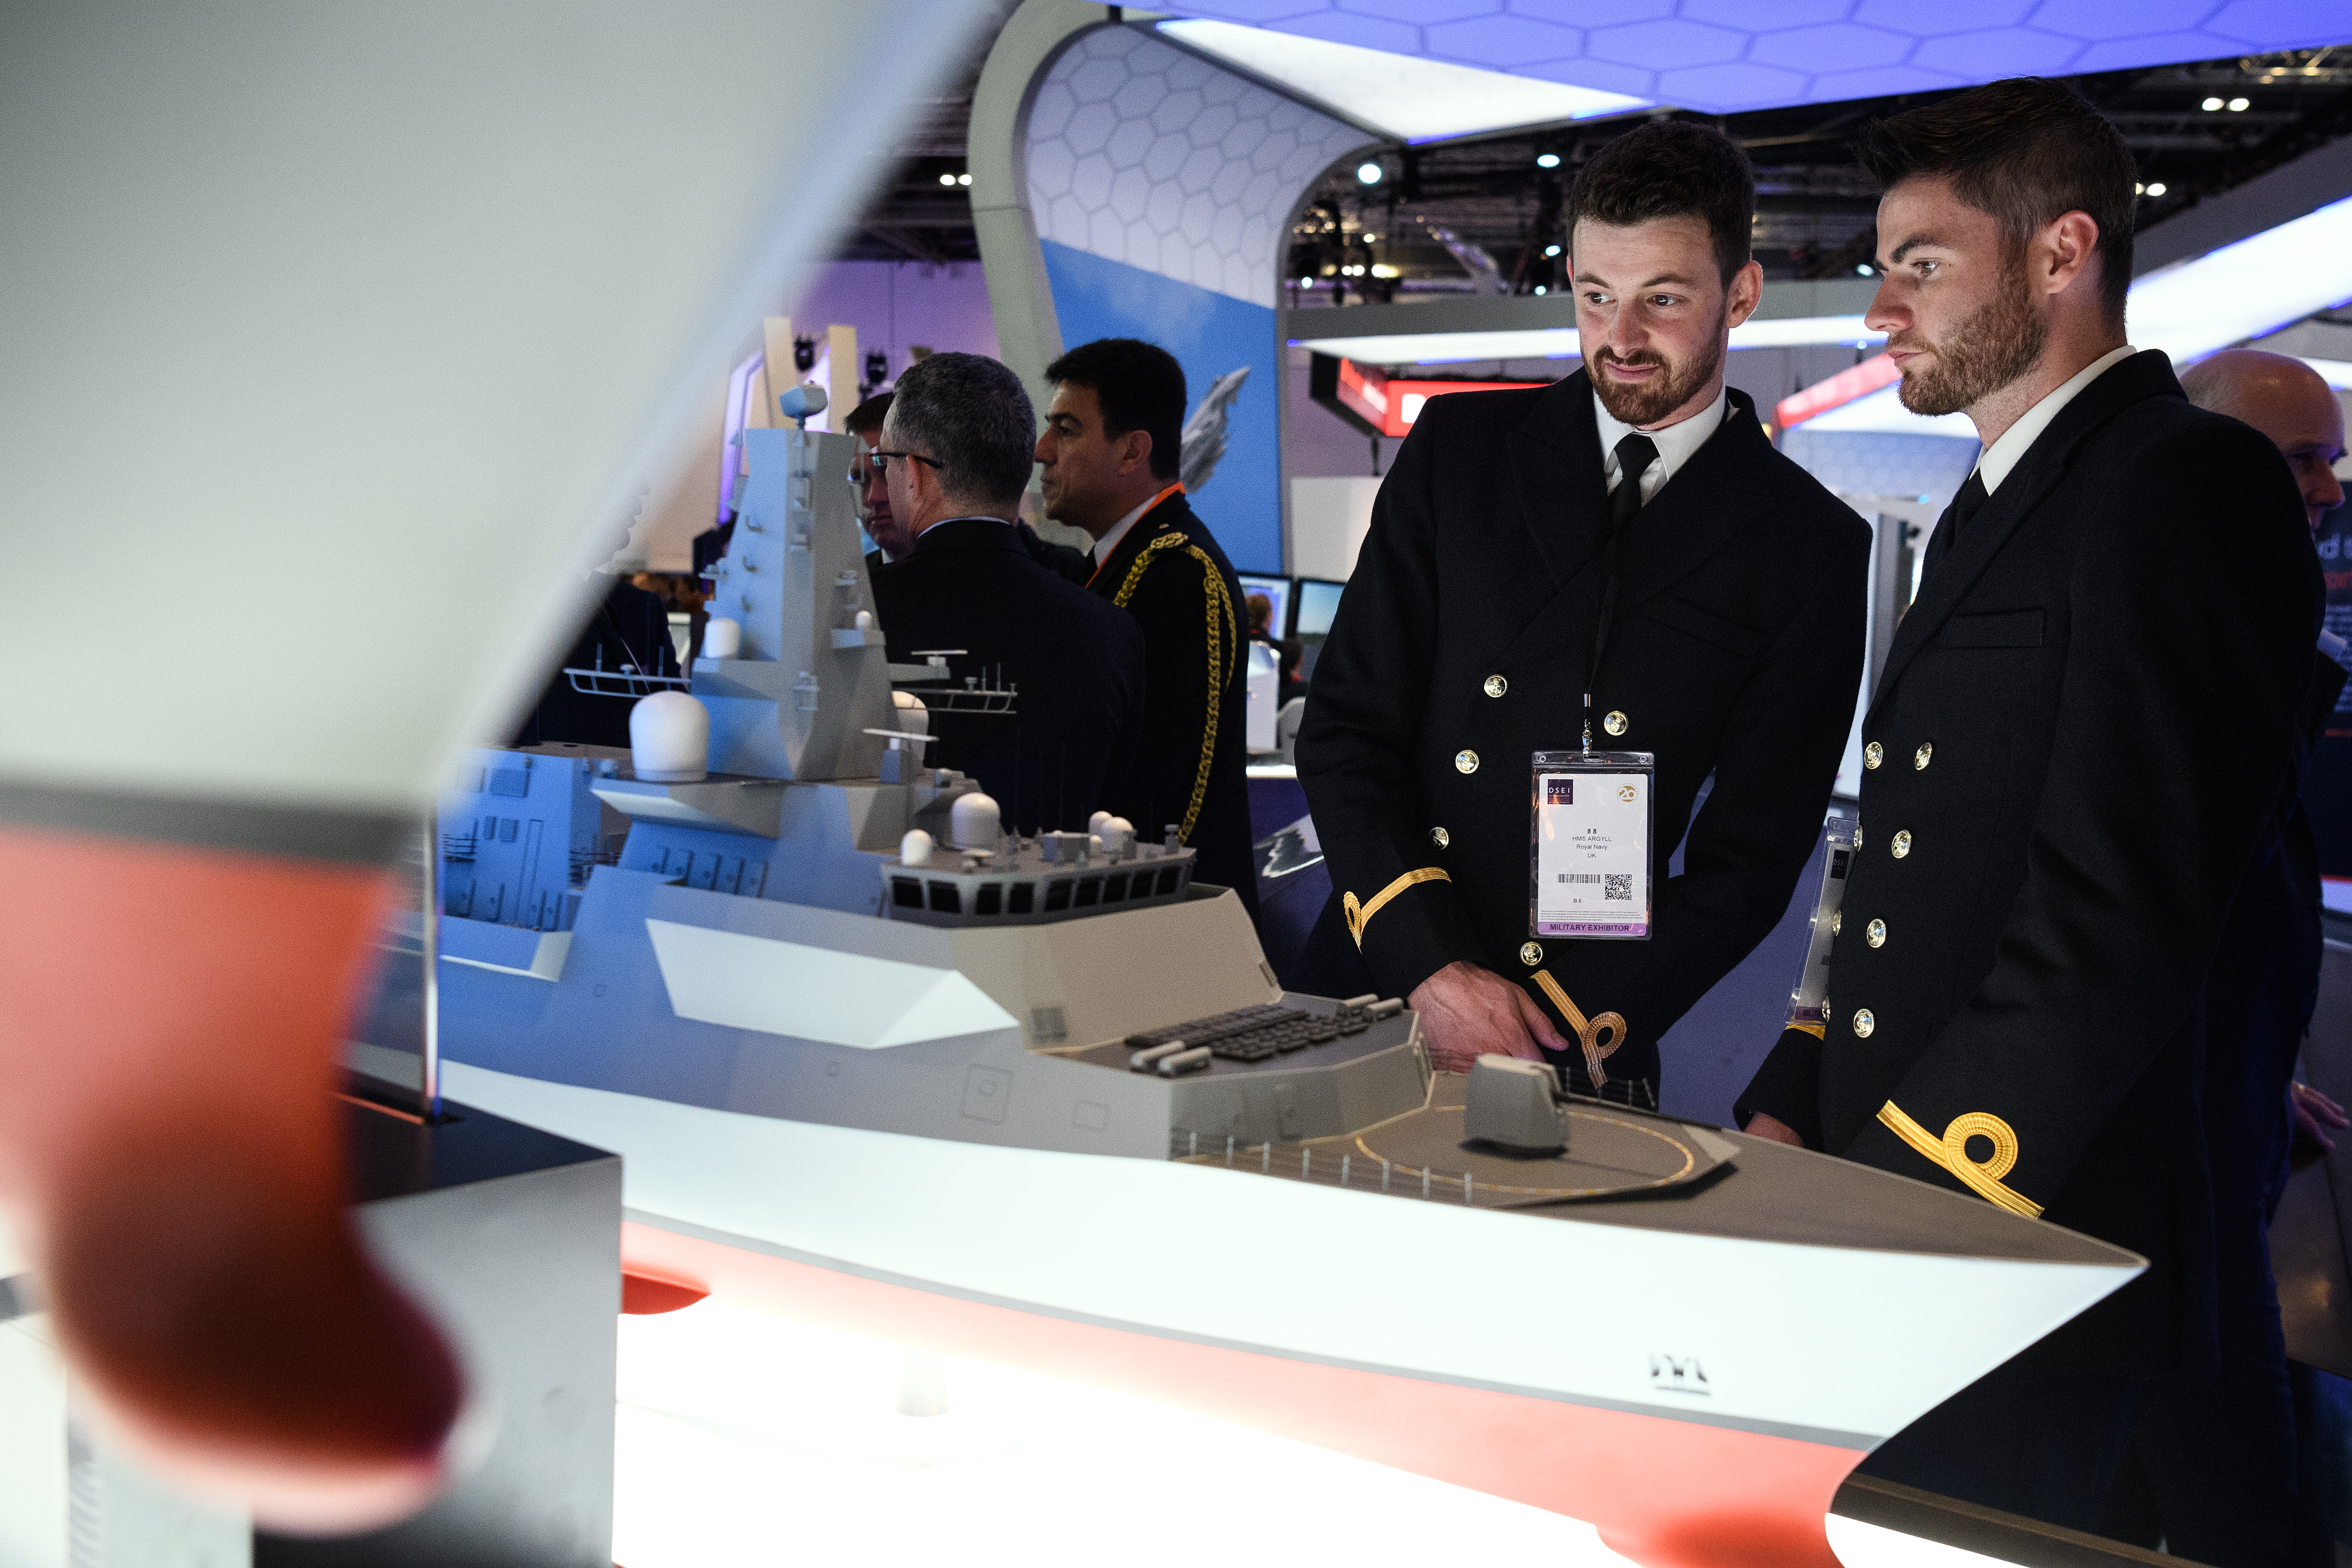 Two men look at a model of a Type 26 frigate at the BAE Systems stand at DSEI. (Leon Neal/Getty Images)